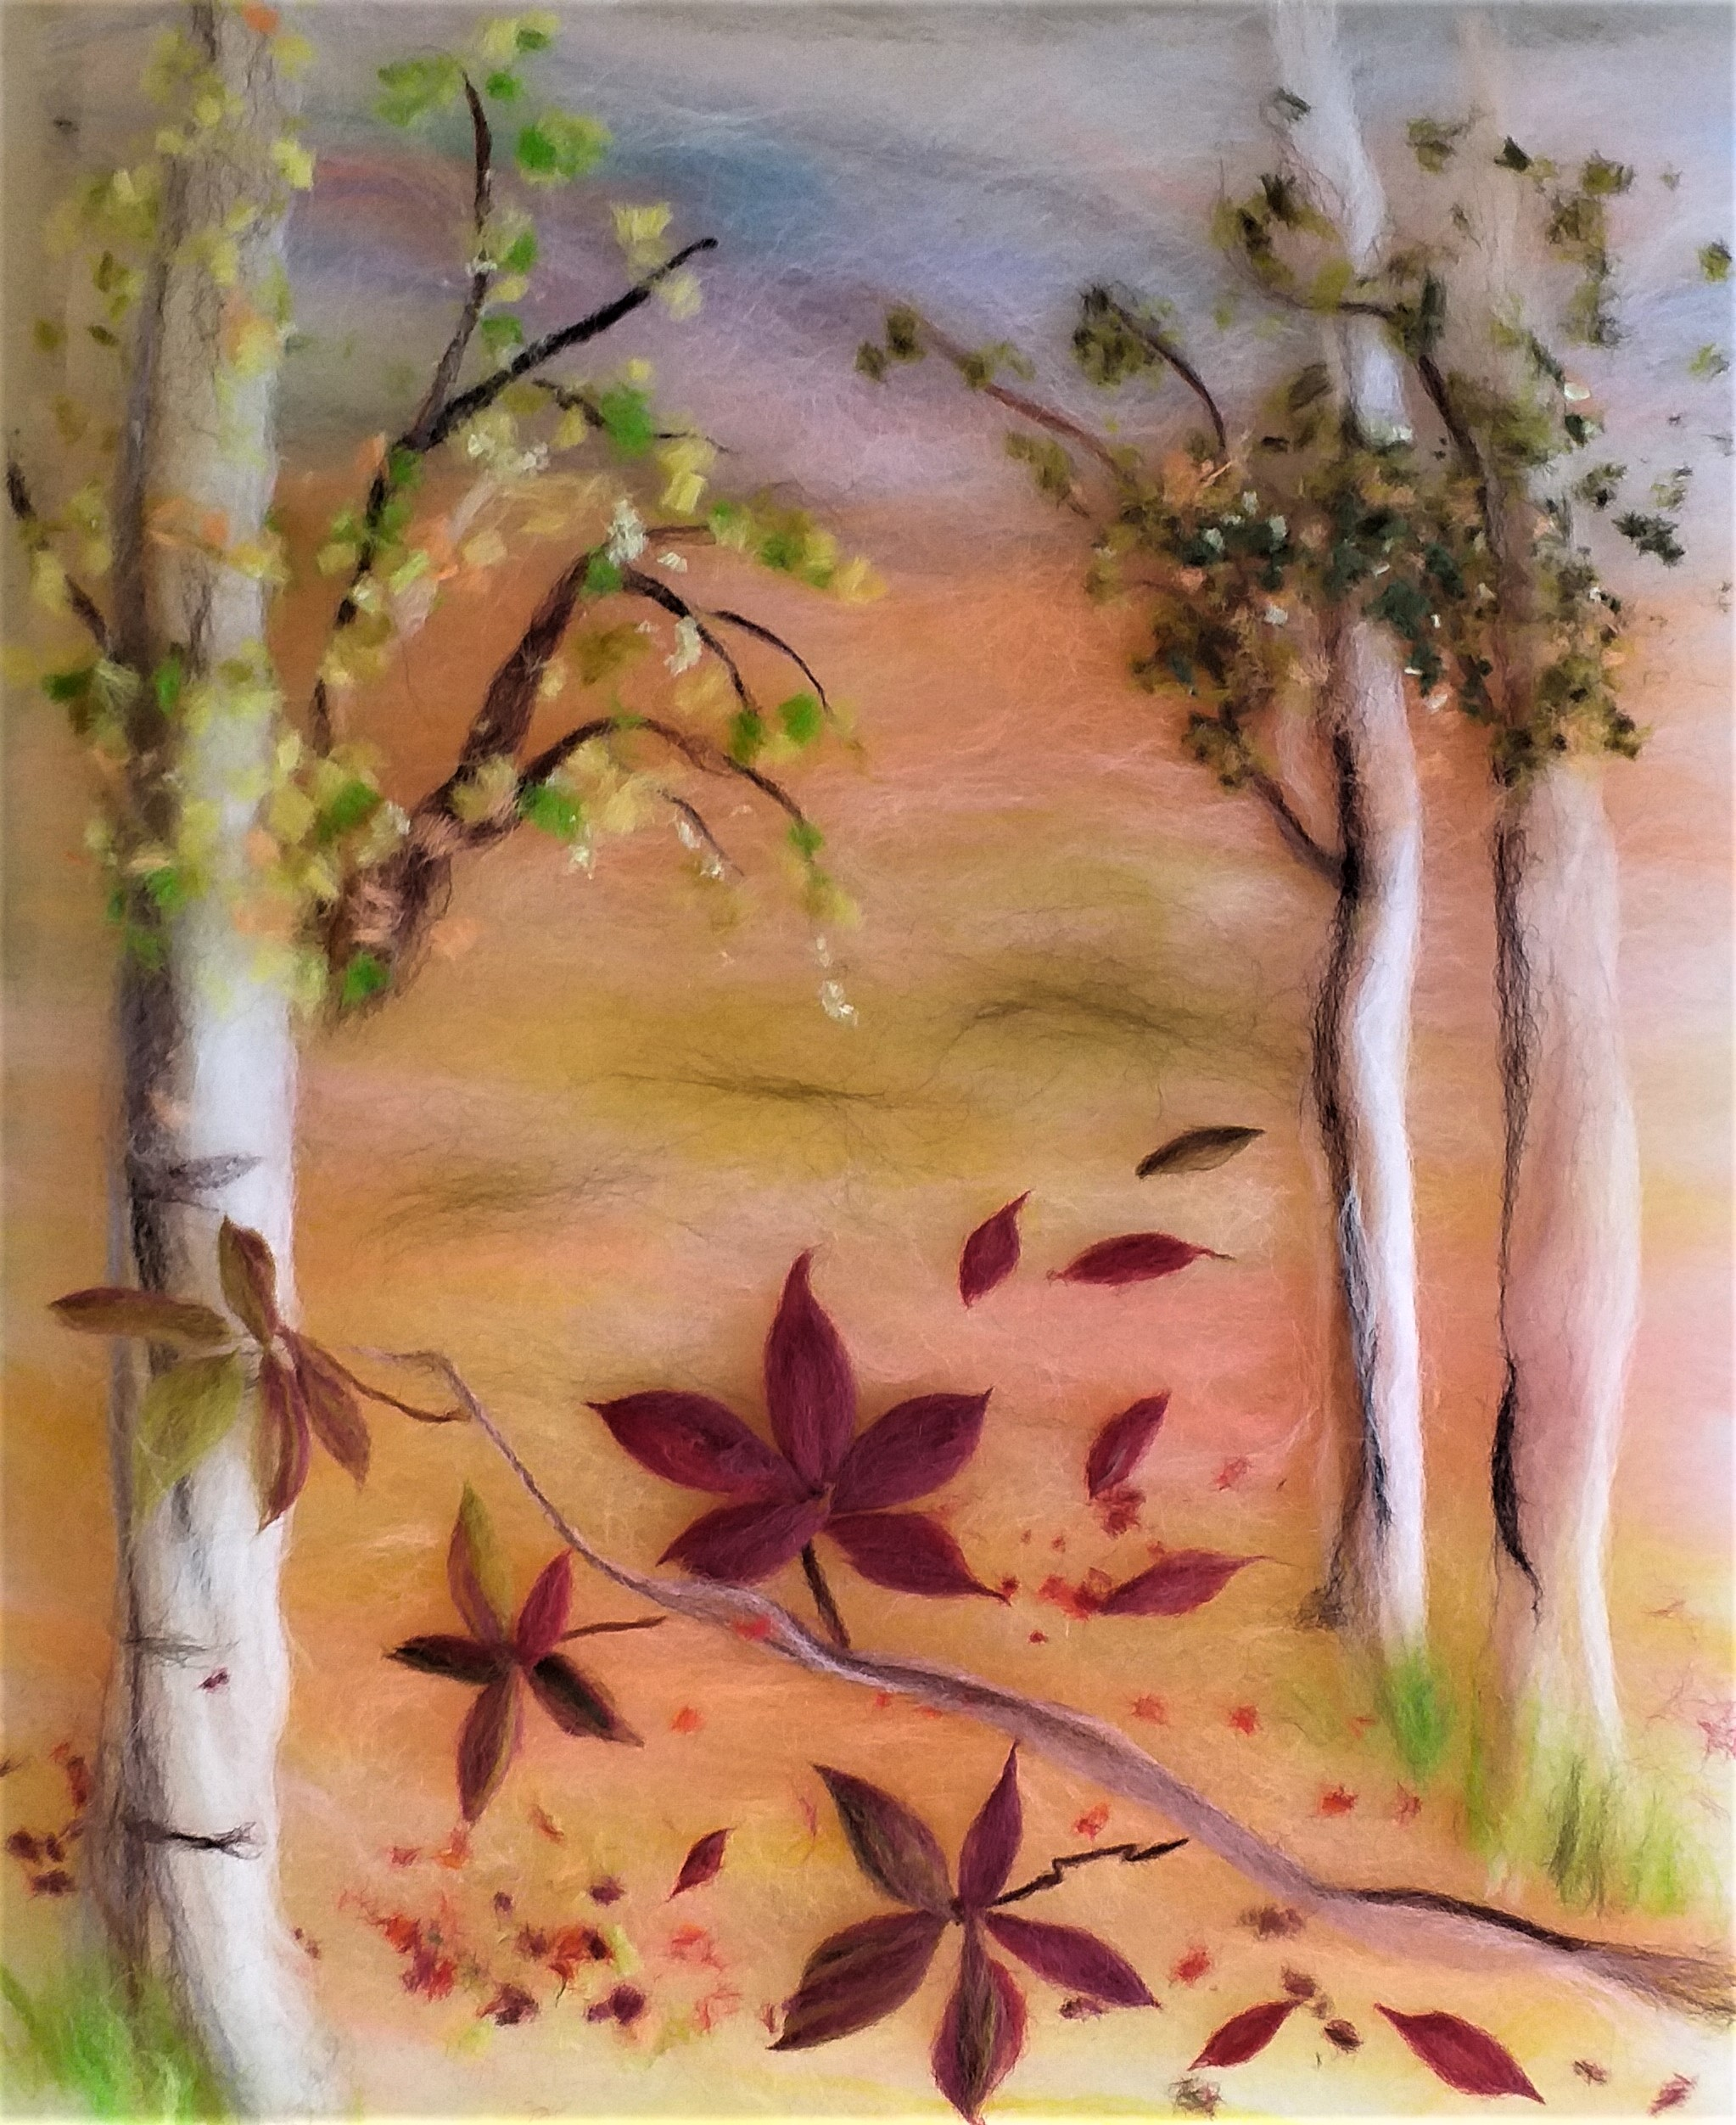 Autumn wool painting by student at Magic Wool Art and Craft studio in Kidderminster, Worcestershire